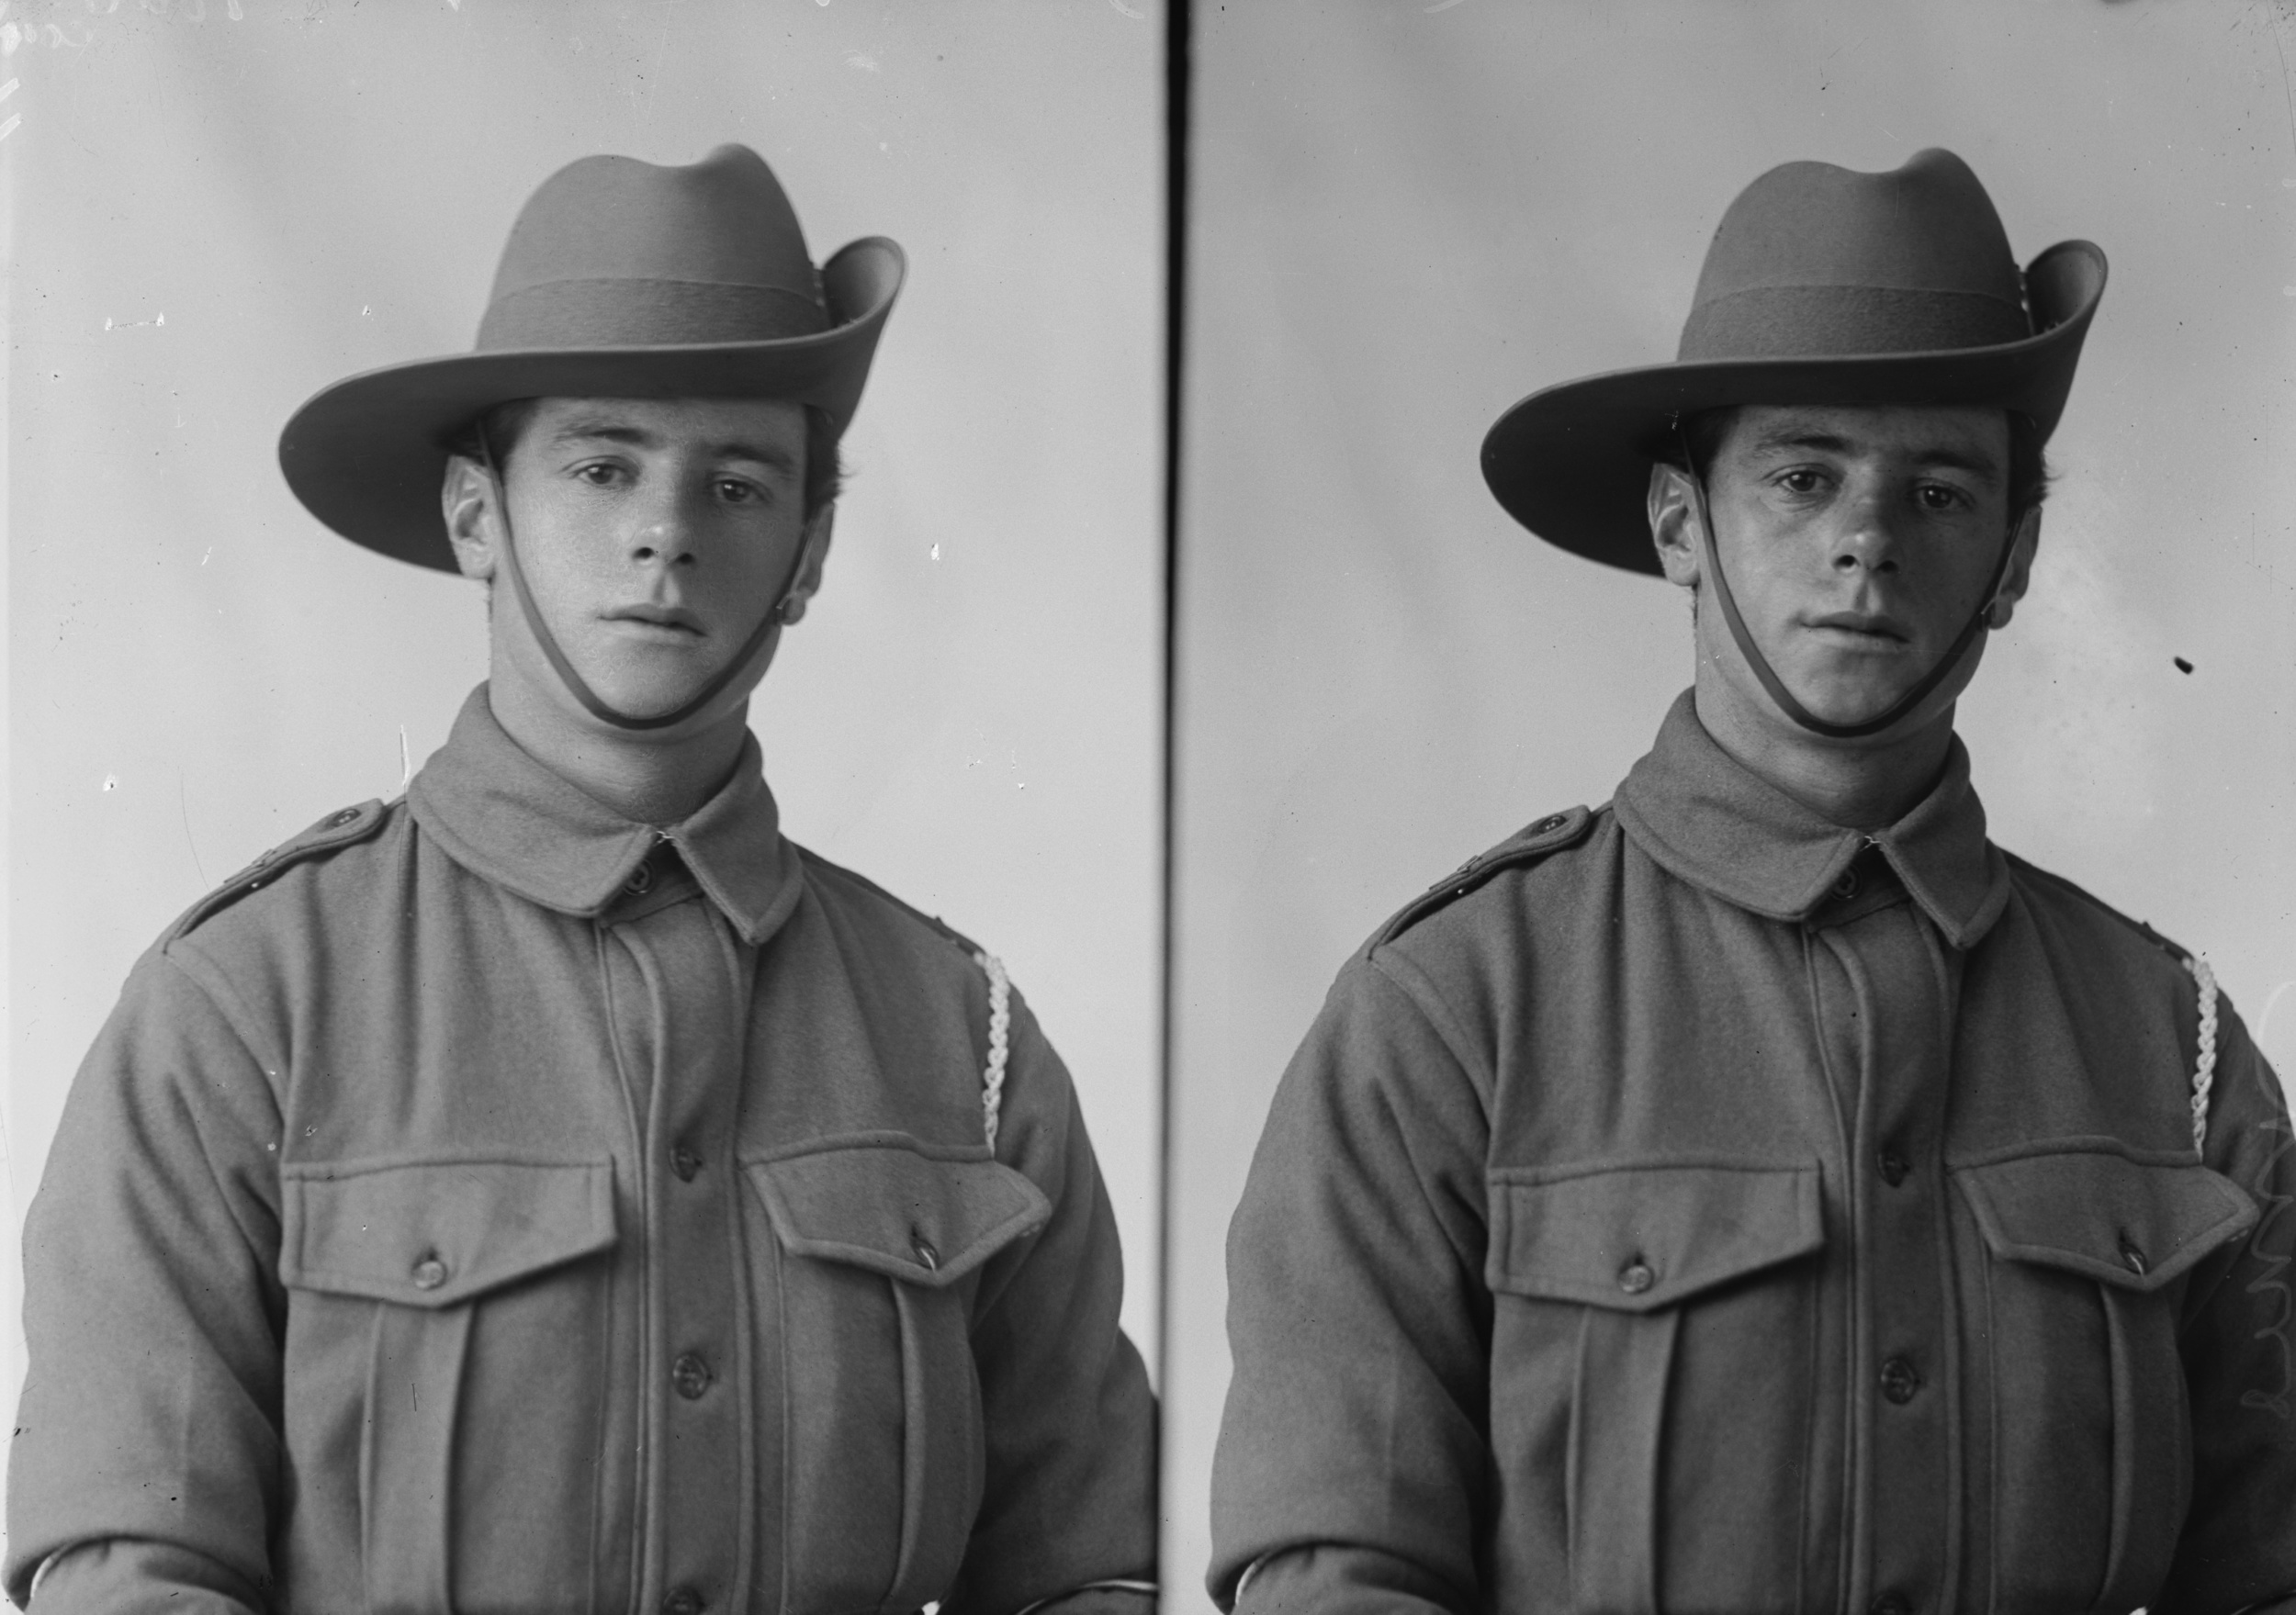 Photographed at the Dease Studio, 117 Barrack Street Perth WA Image courtesy of the State Library of Western Australia: 108601PD